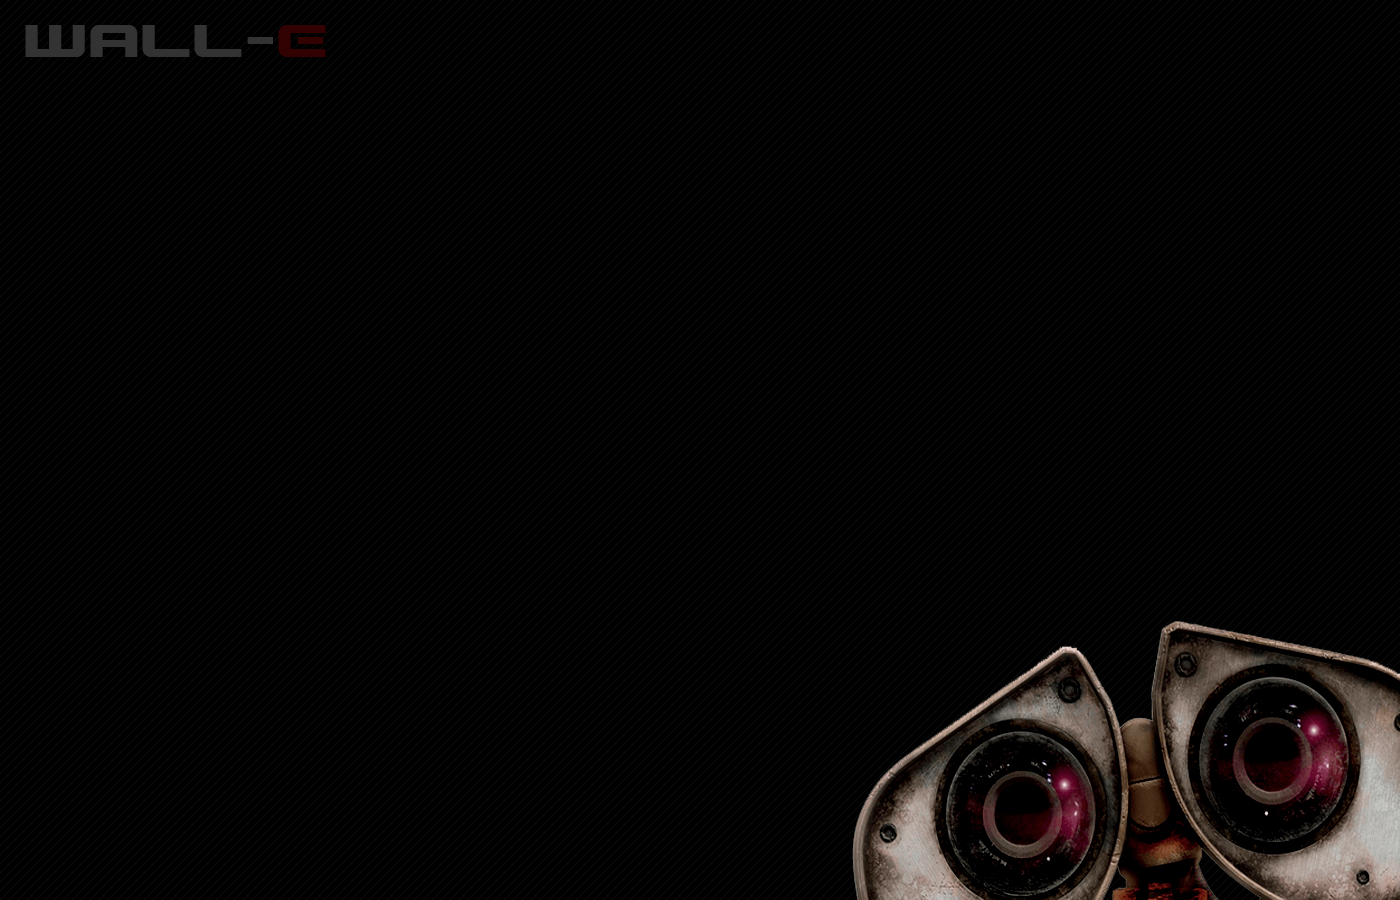 WALL E Wallpapers by Manuk8